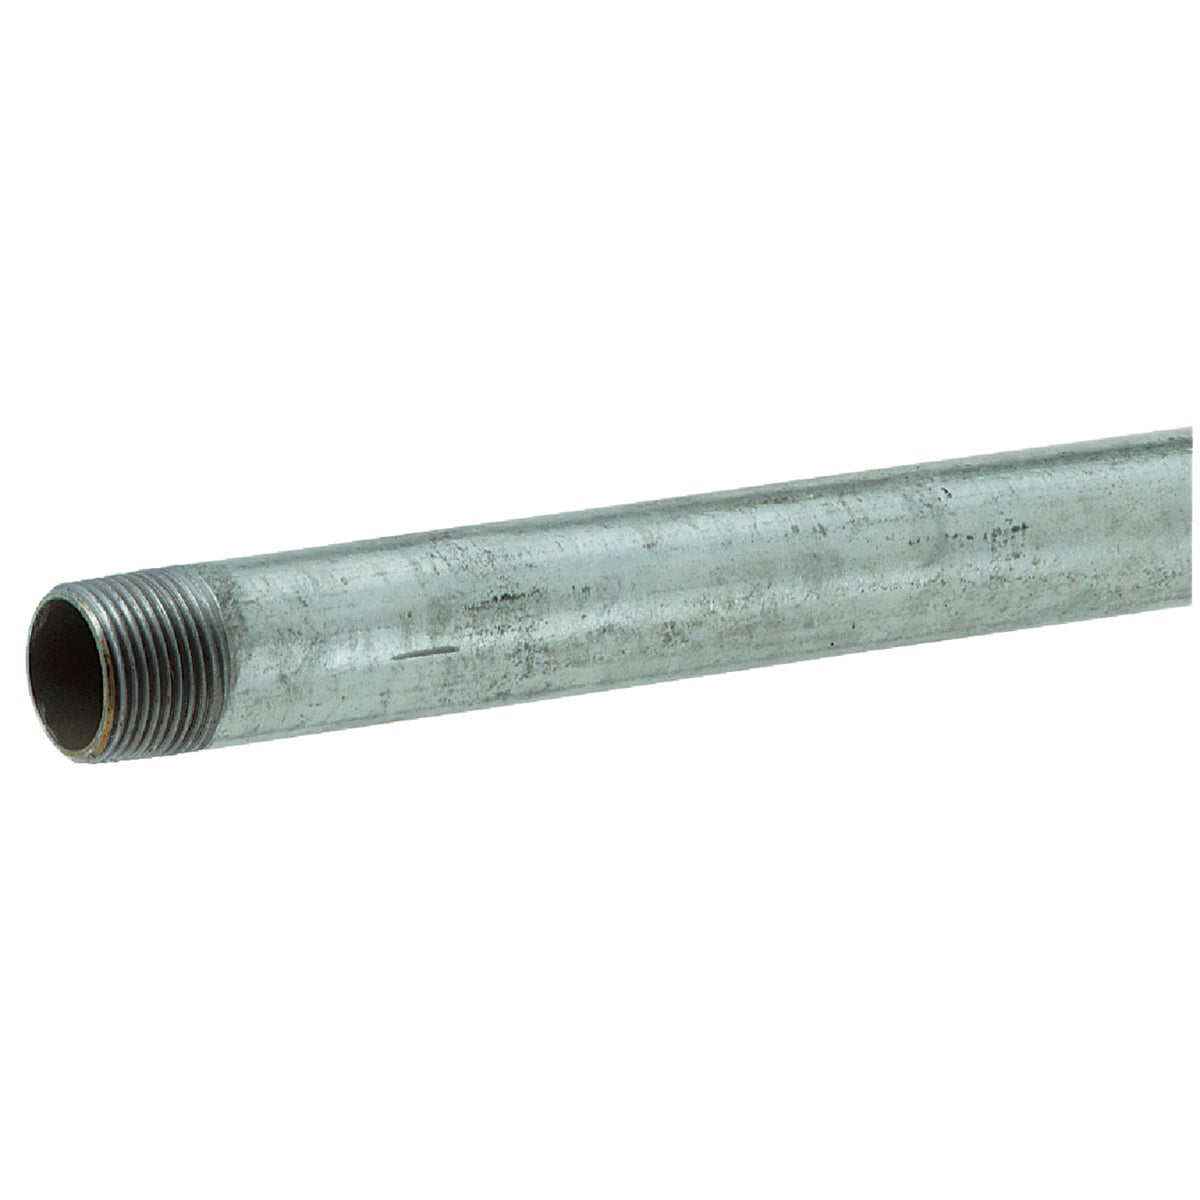 3/4X36 GALV RDI-CT PIPE